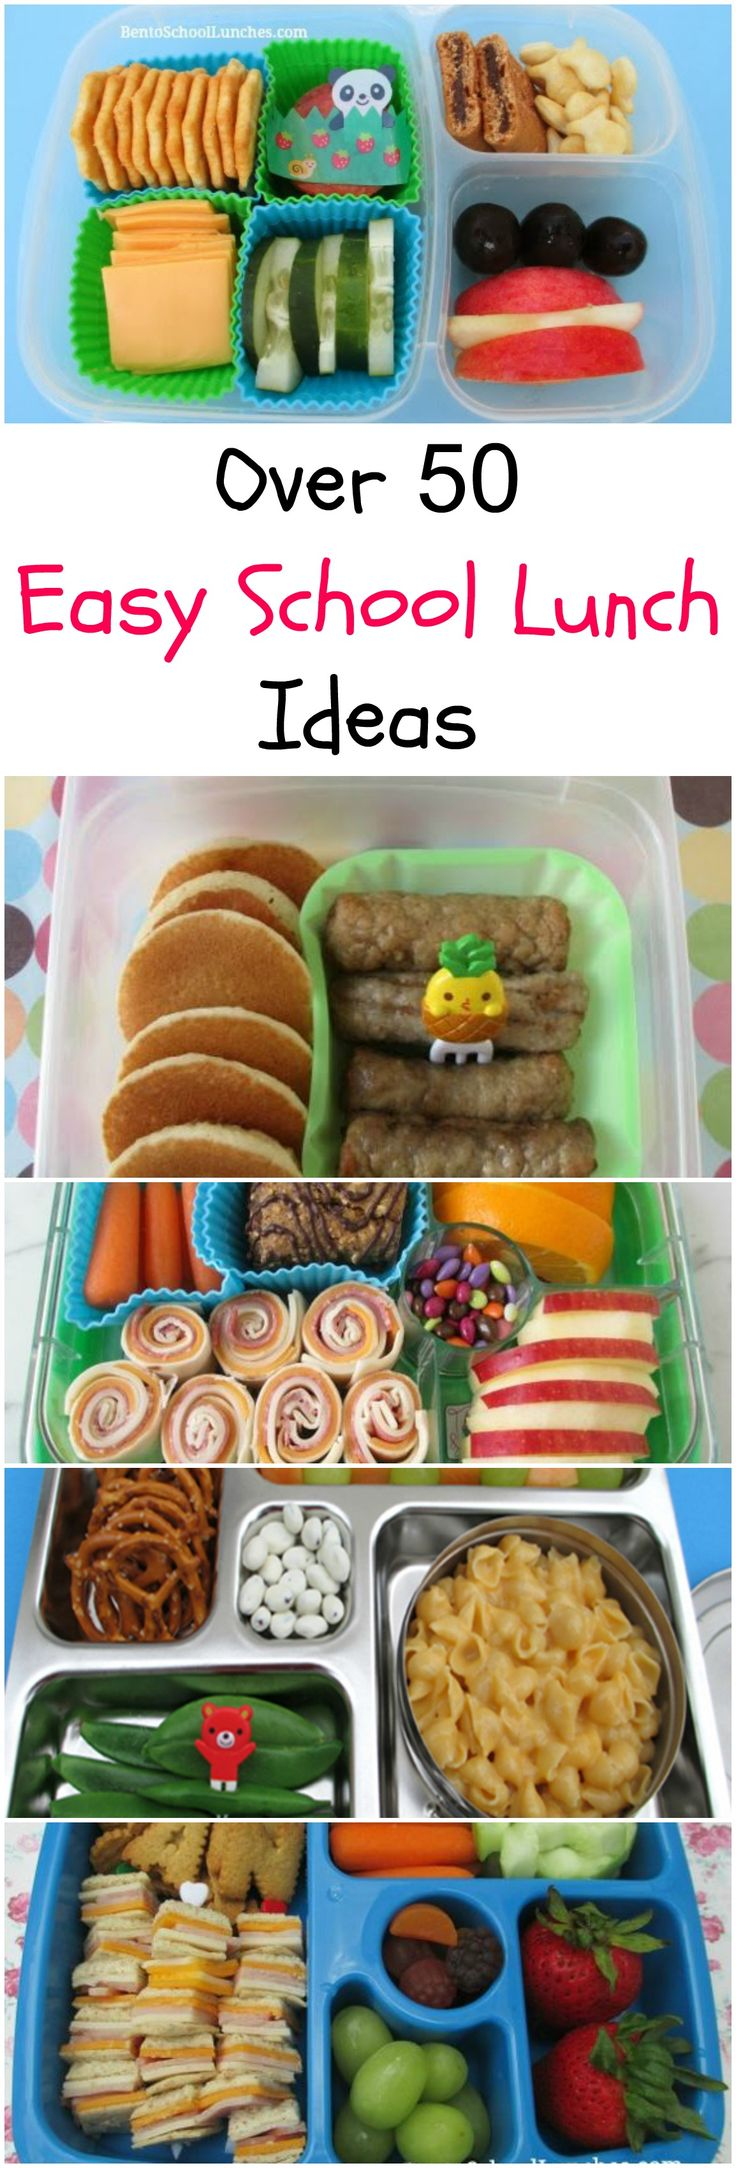 987 best non sandwich lunch images on pinterest for kids funny